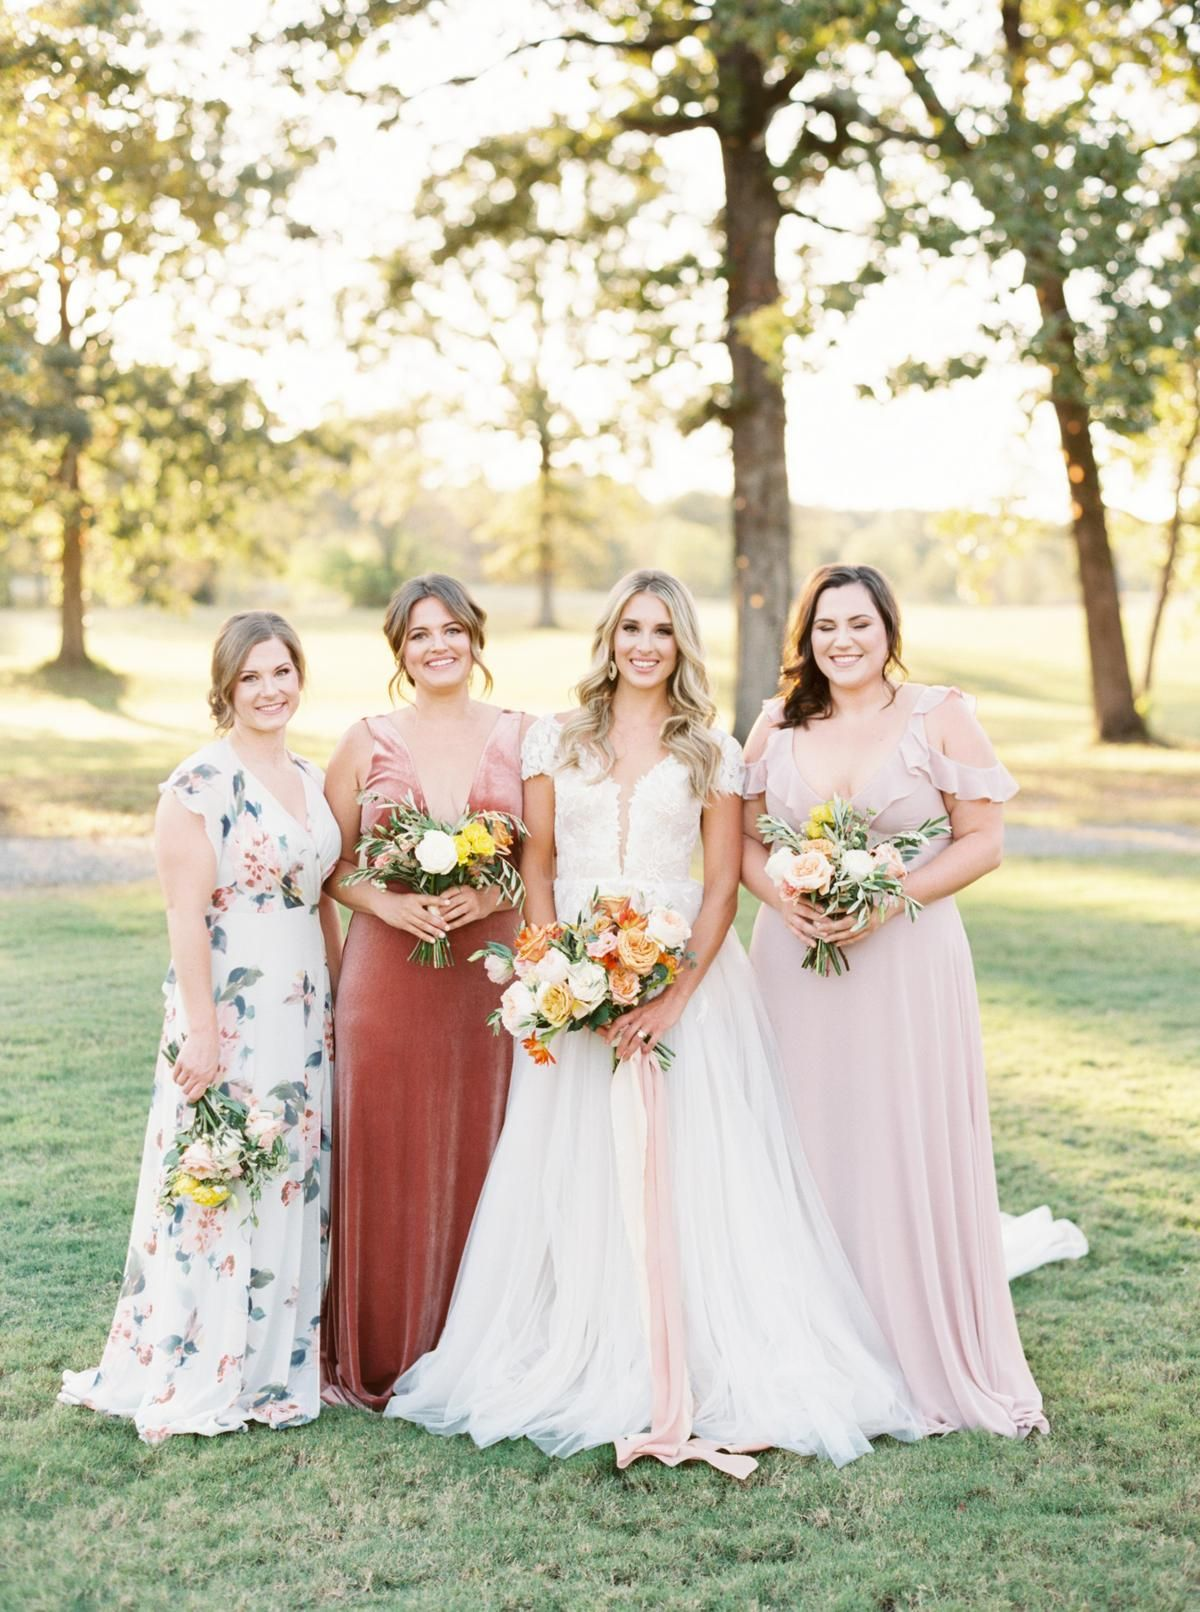 The Perfect Transitional Color Palette Between Summer And Fall Spring Bridesmaid Dresses Summer Bridesmaid Dresses Fall Bridesmaid Dresses [ 1612 x 1200 Pixel ]